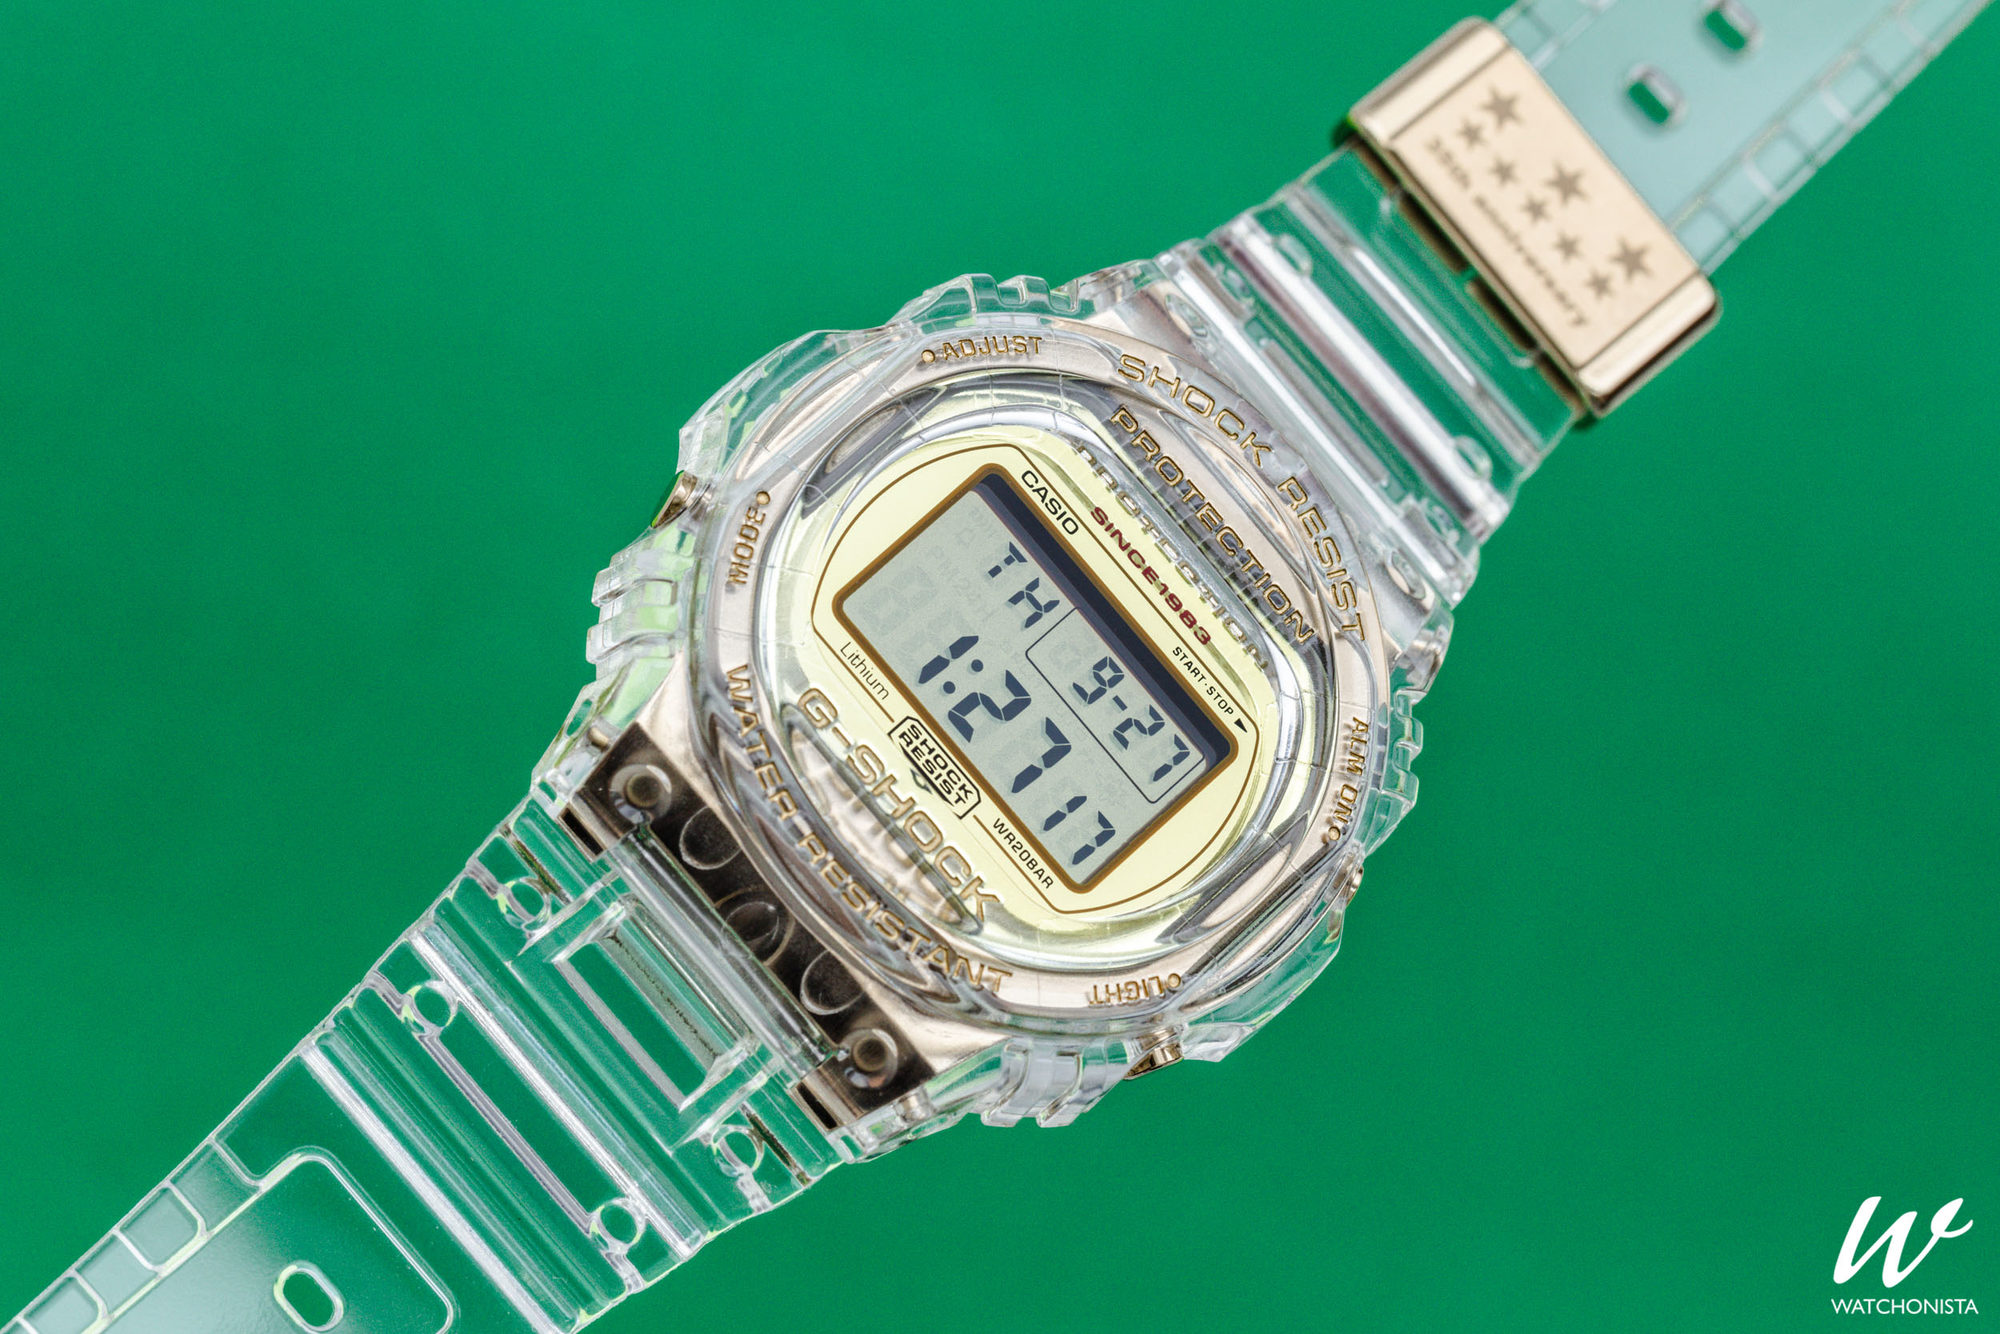 e46c4f842224 So how has Casio kept the G-SHOCK relevant  By adding new and improved  functions and designs while staying true to its roots.